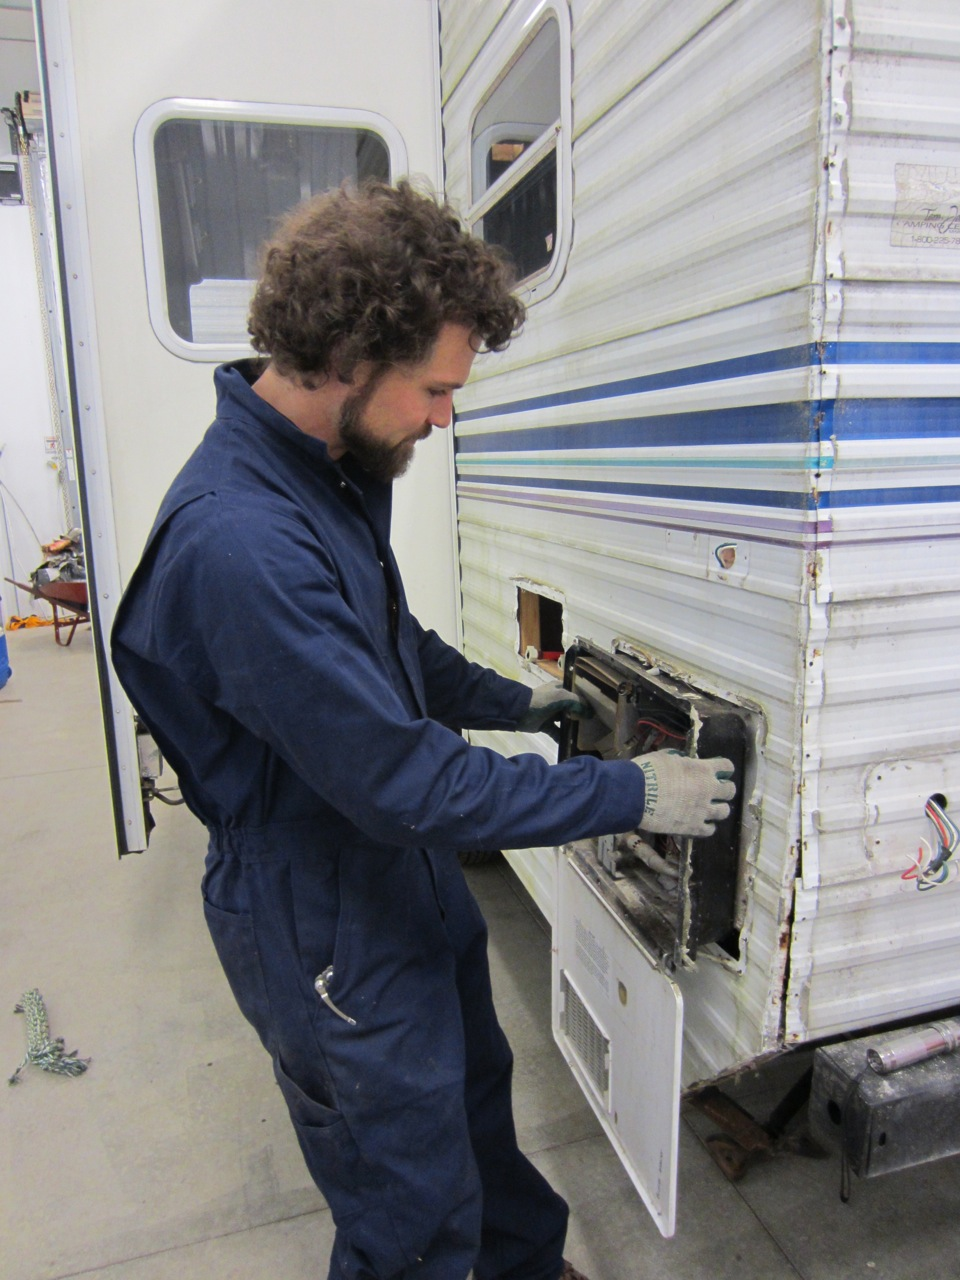 Jerud taking the water heater out. We won't be needing that - we are going to install point of use water heaters.